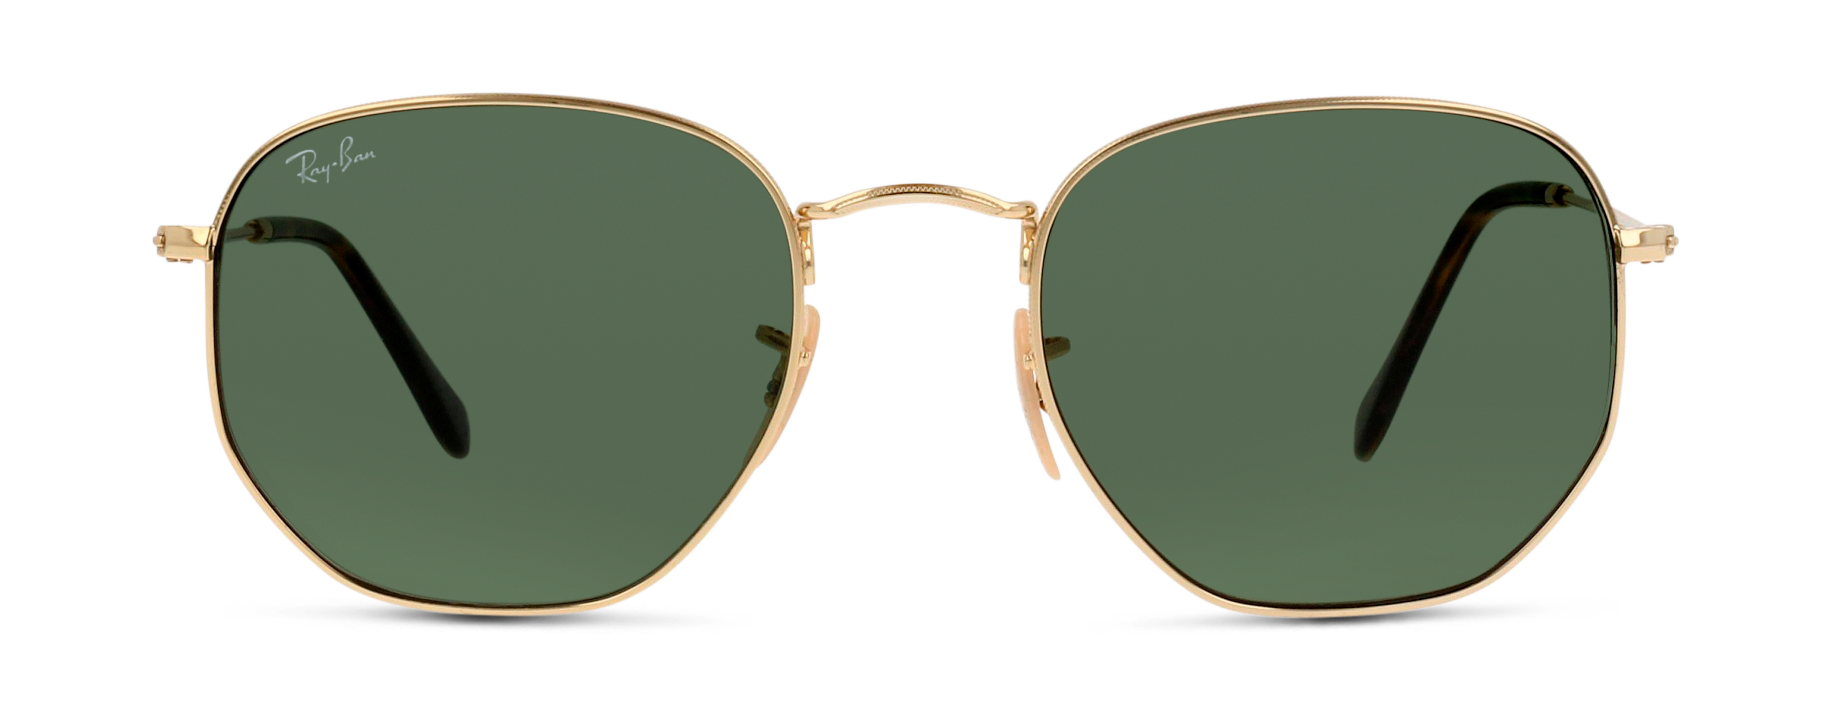 Front Ray-Ban RayBan 3548N 001 54/21 Oro/Verde